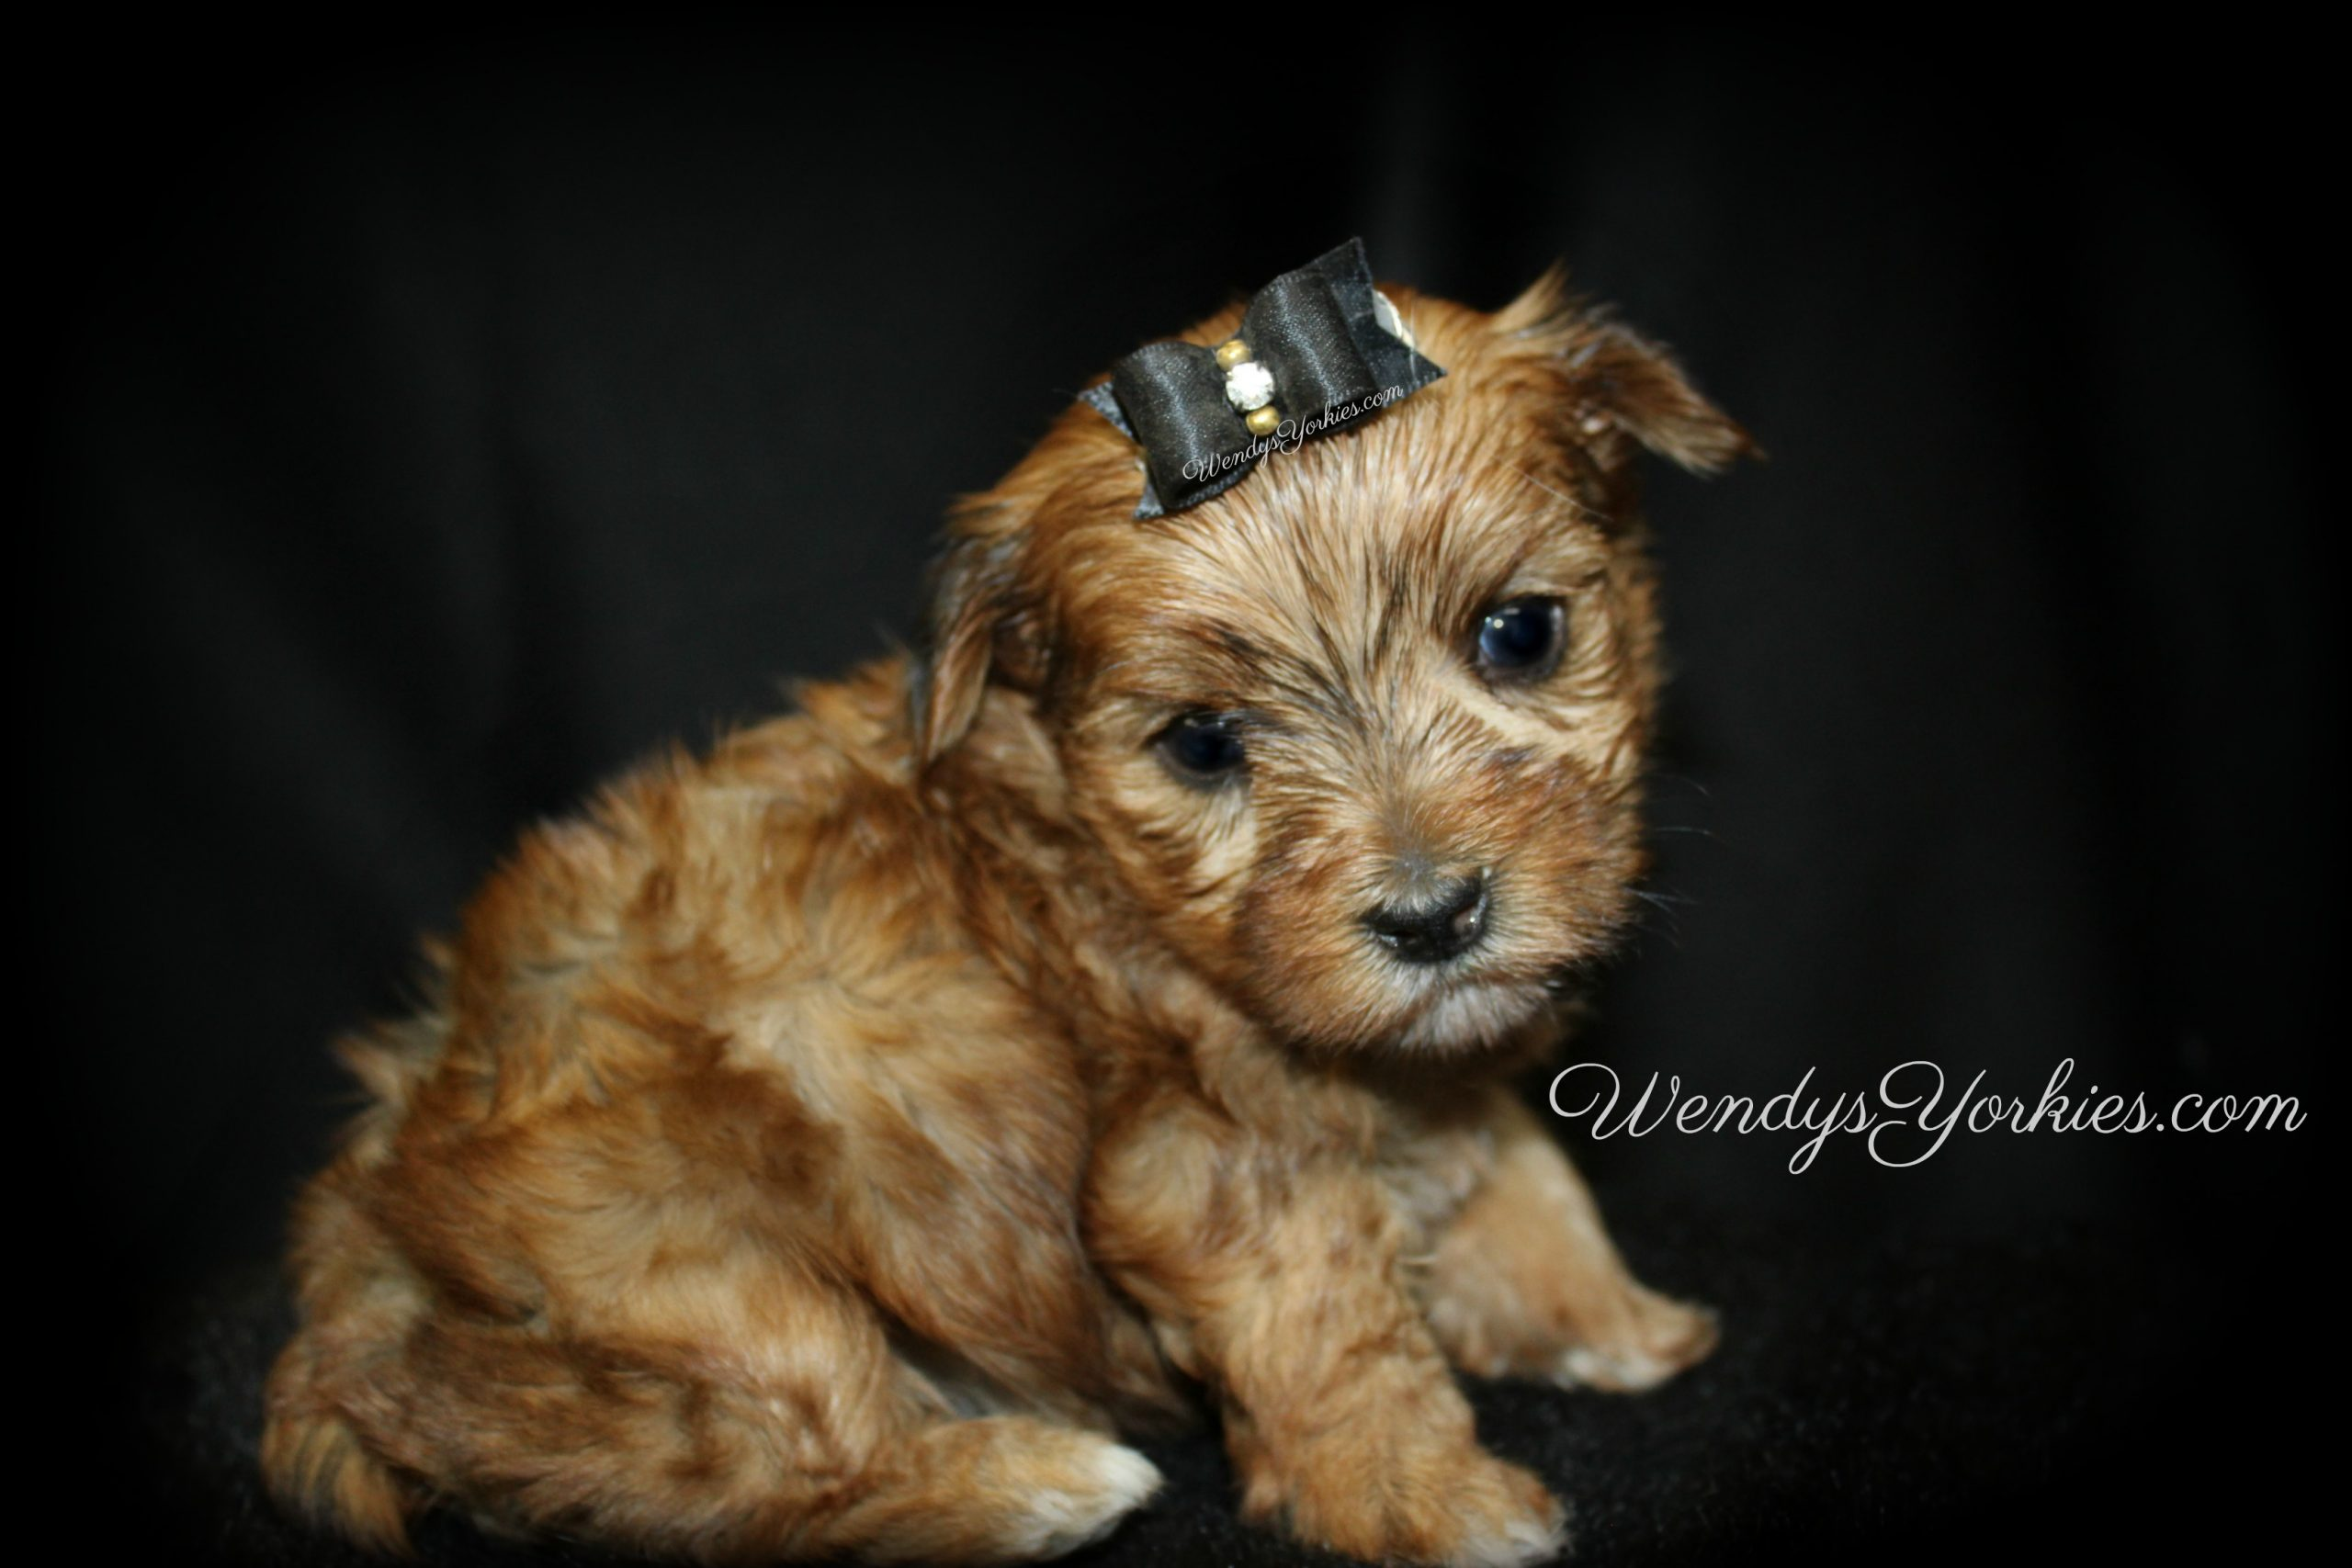 Golden Yorkie puppies for sale in Texas, Male Yorkie puppies for sale, Lela m2,WendysYorkies.com